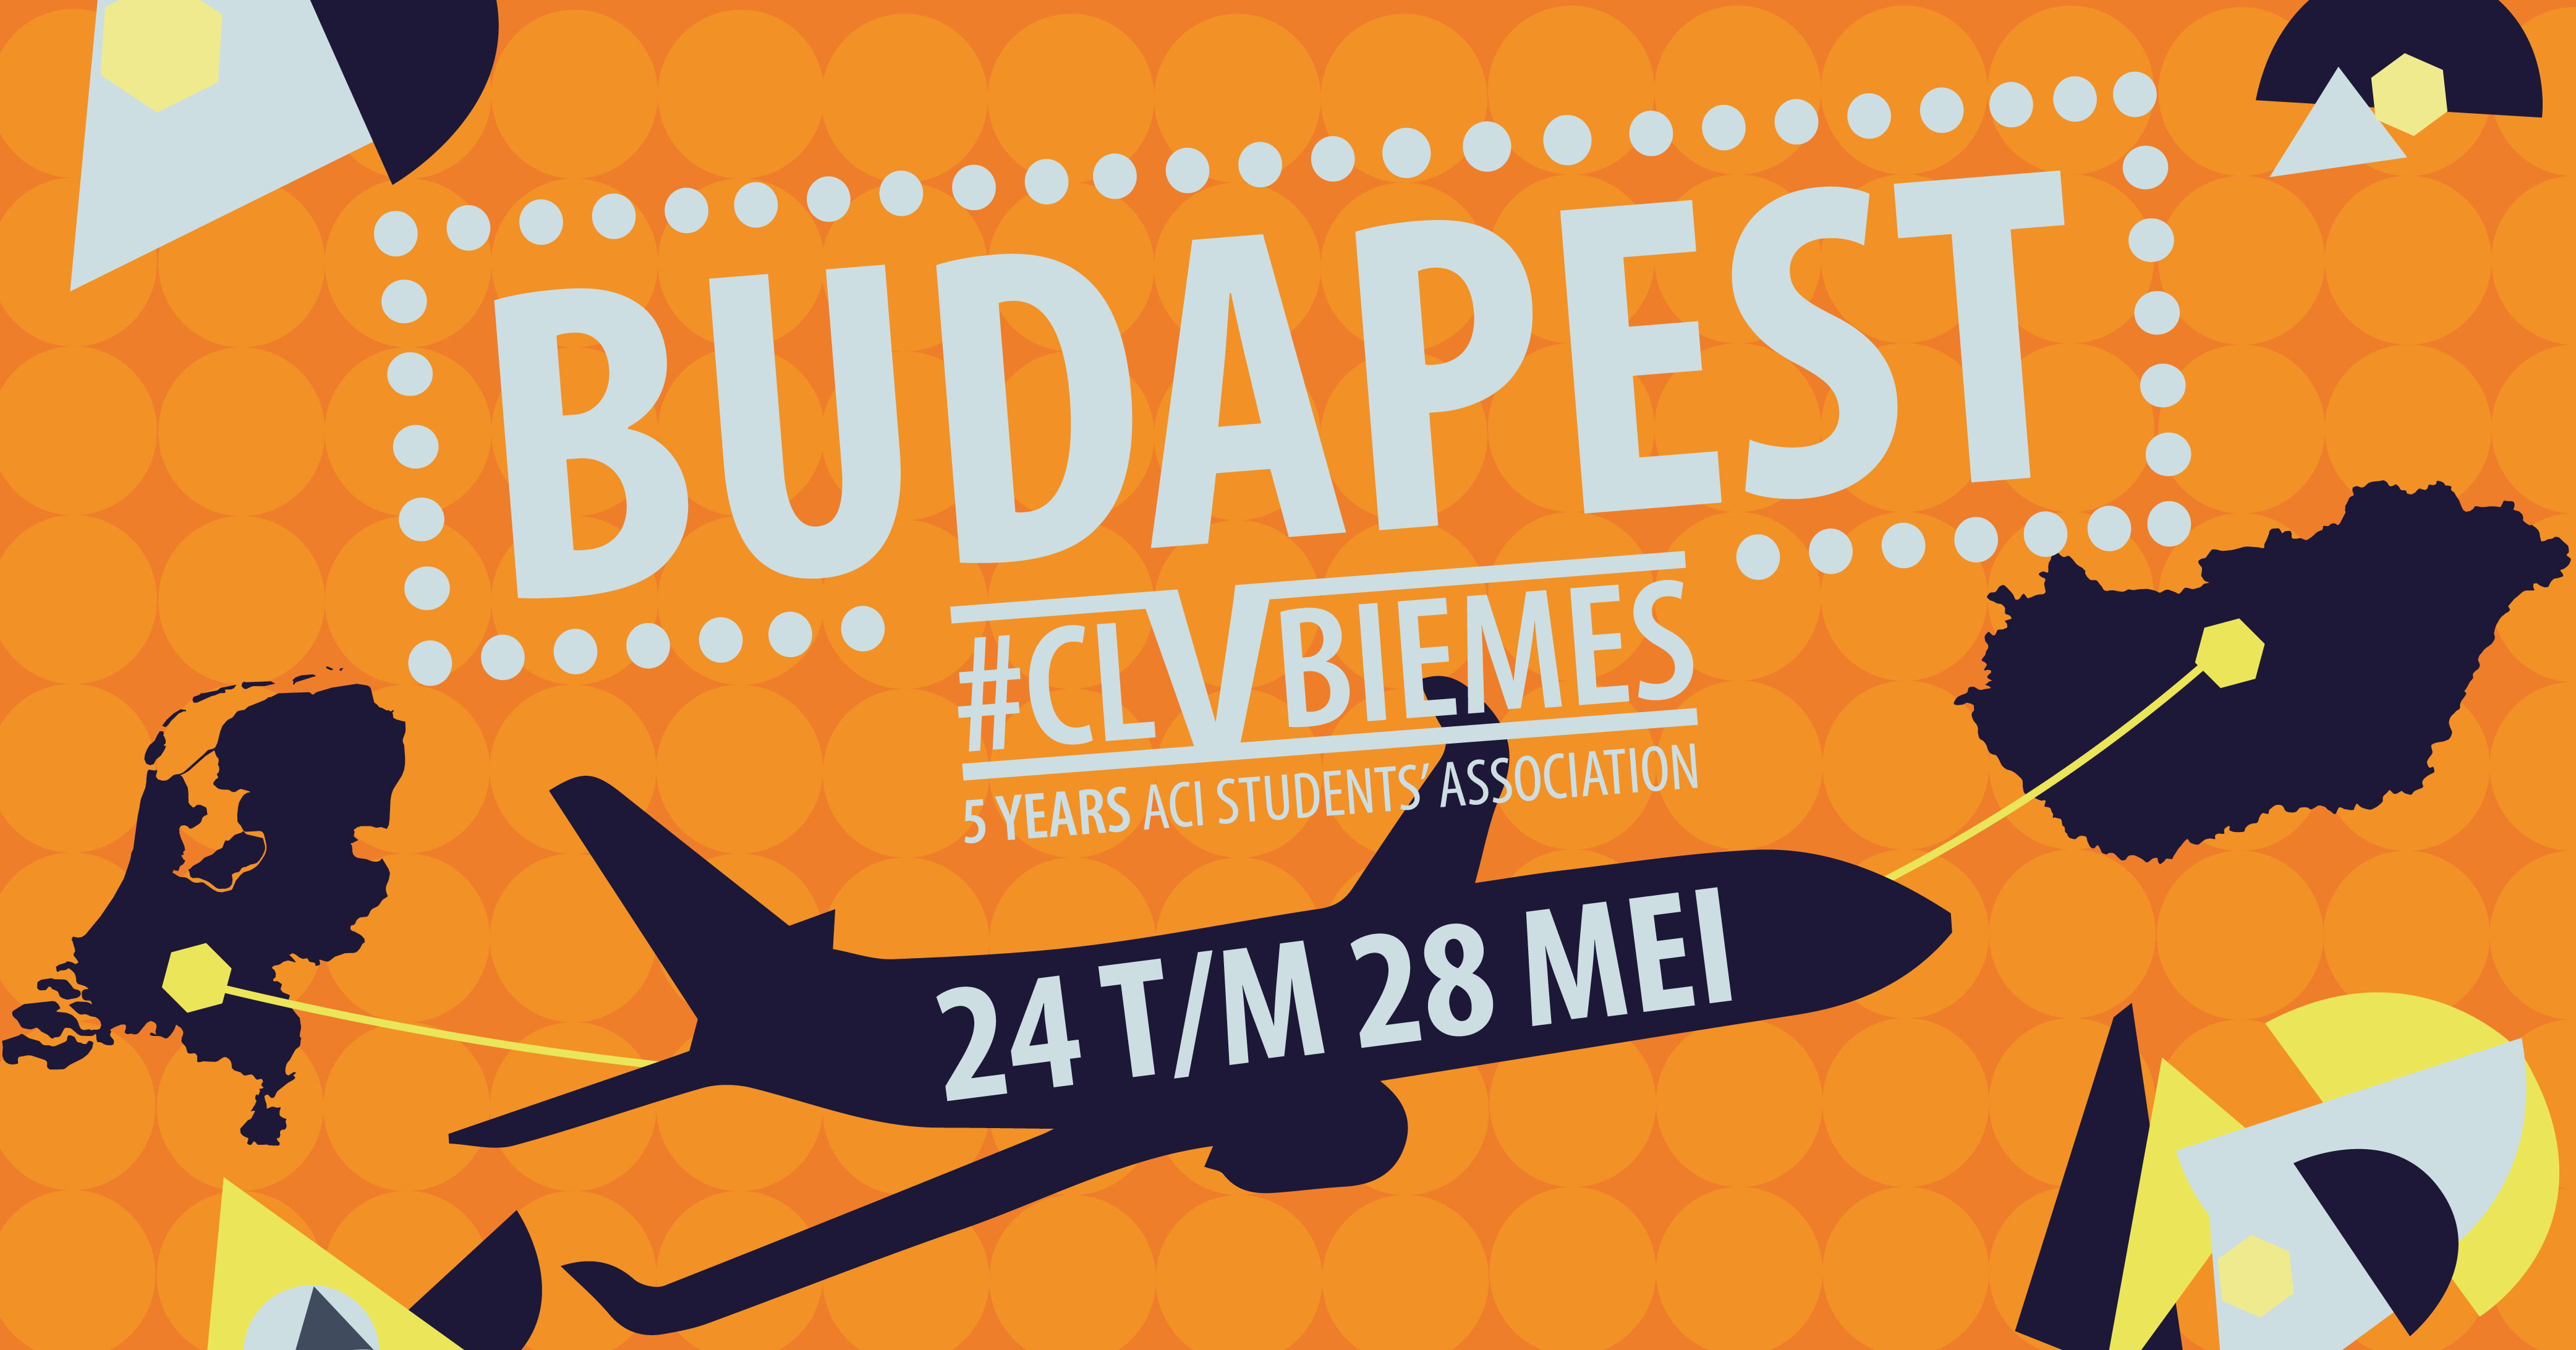 Budapest-01_1.png